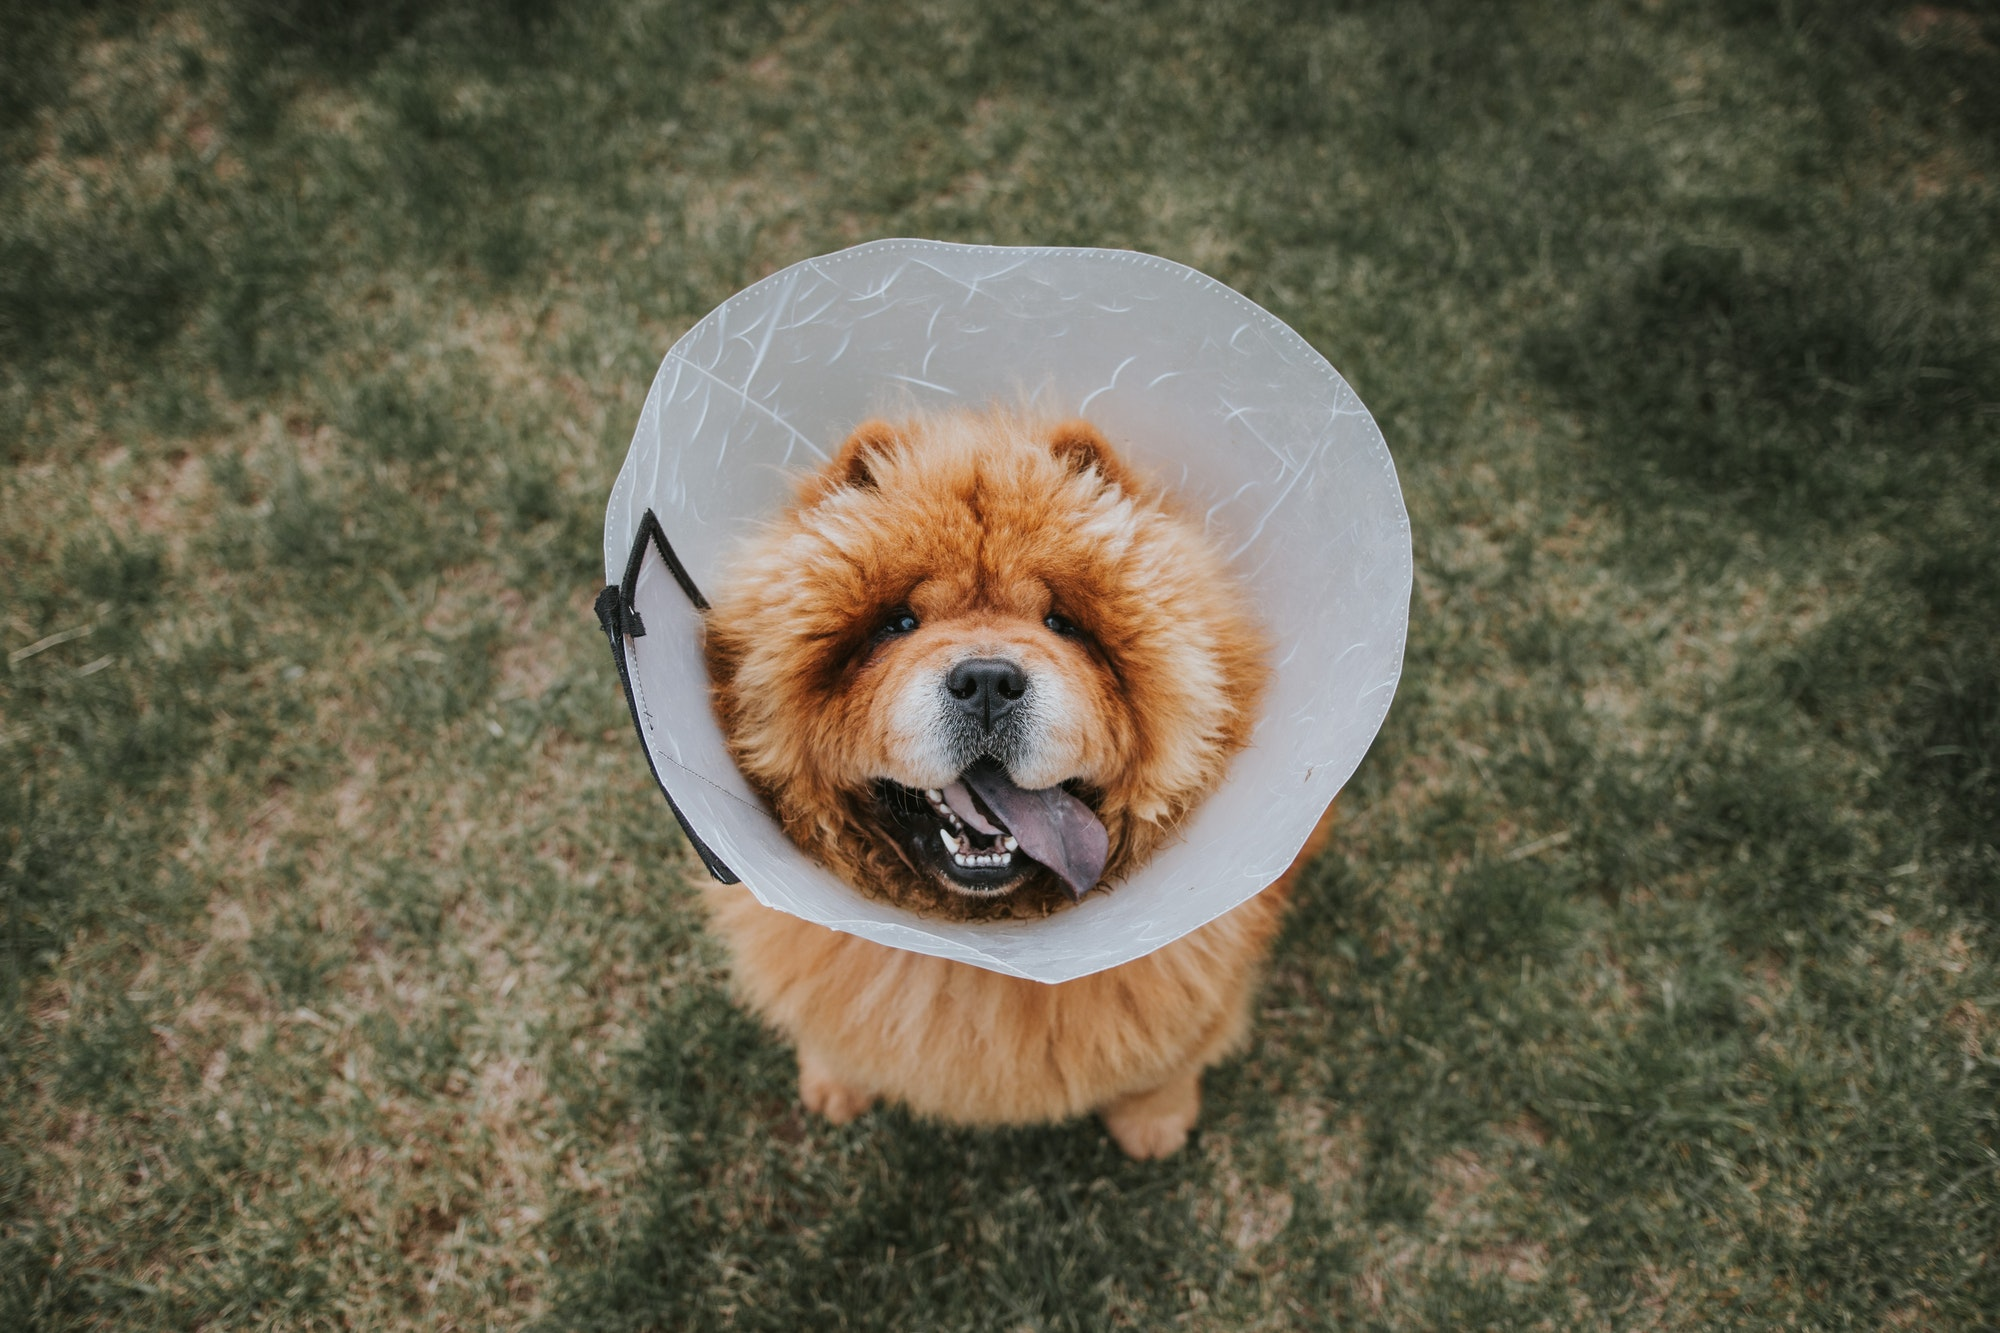 treatment for hookworms in dogs